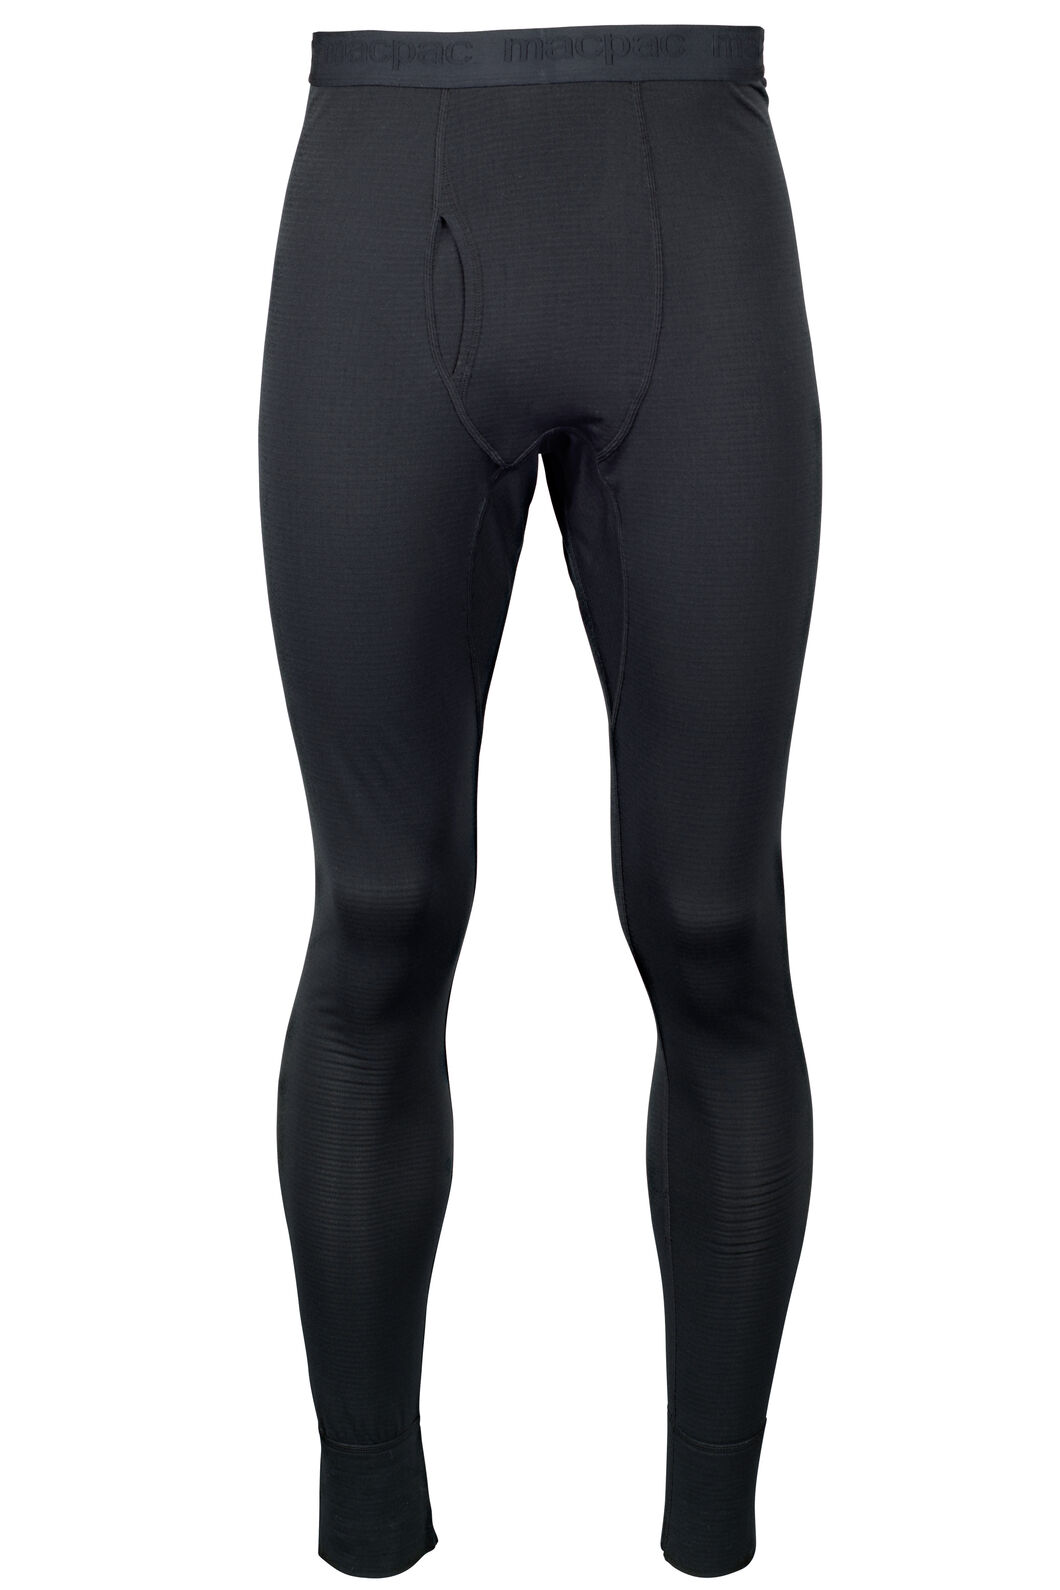 Macpac ProThermal Long Johns - Men's, Black, hi-res